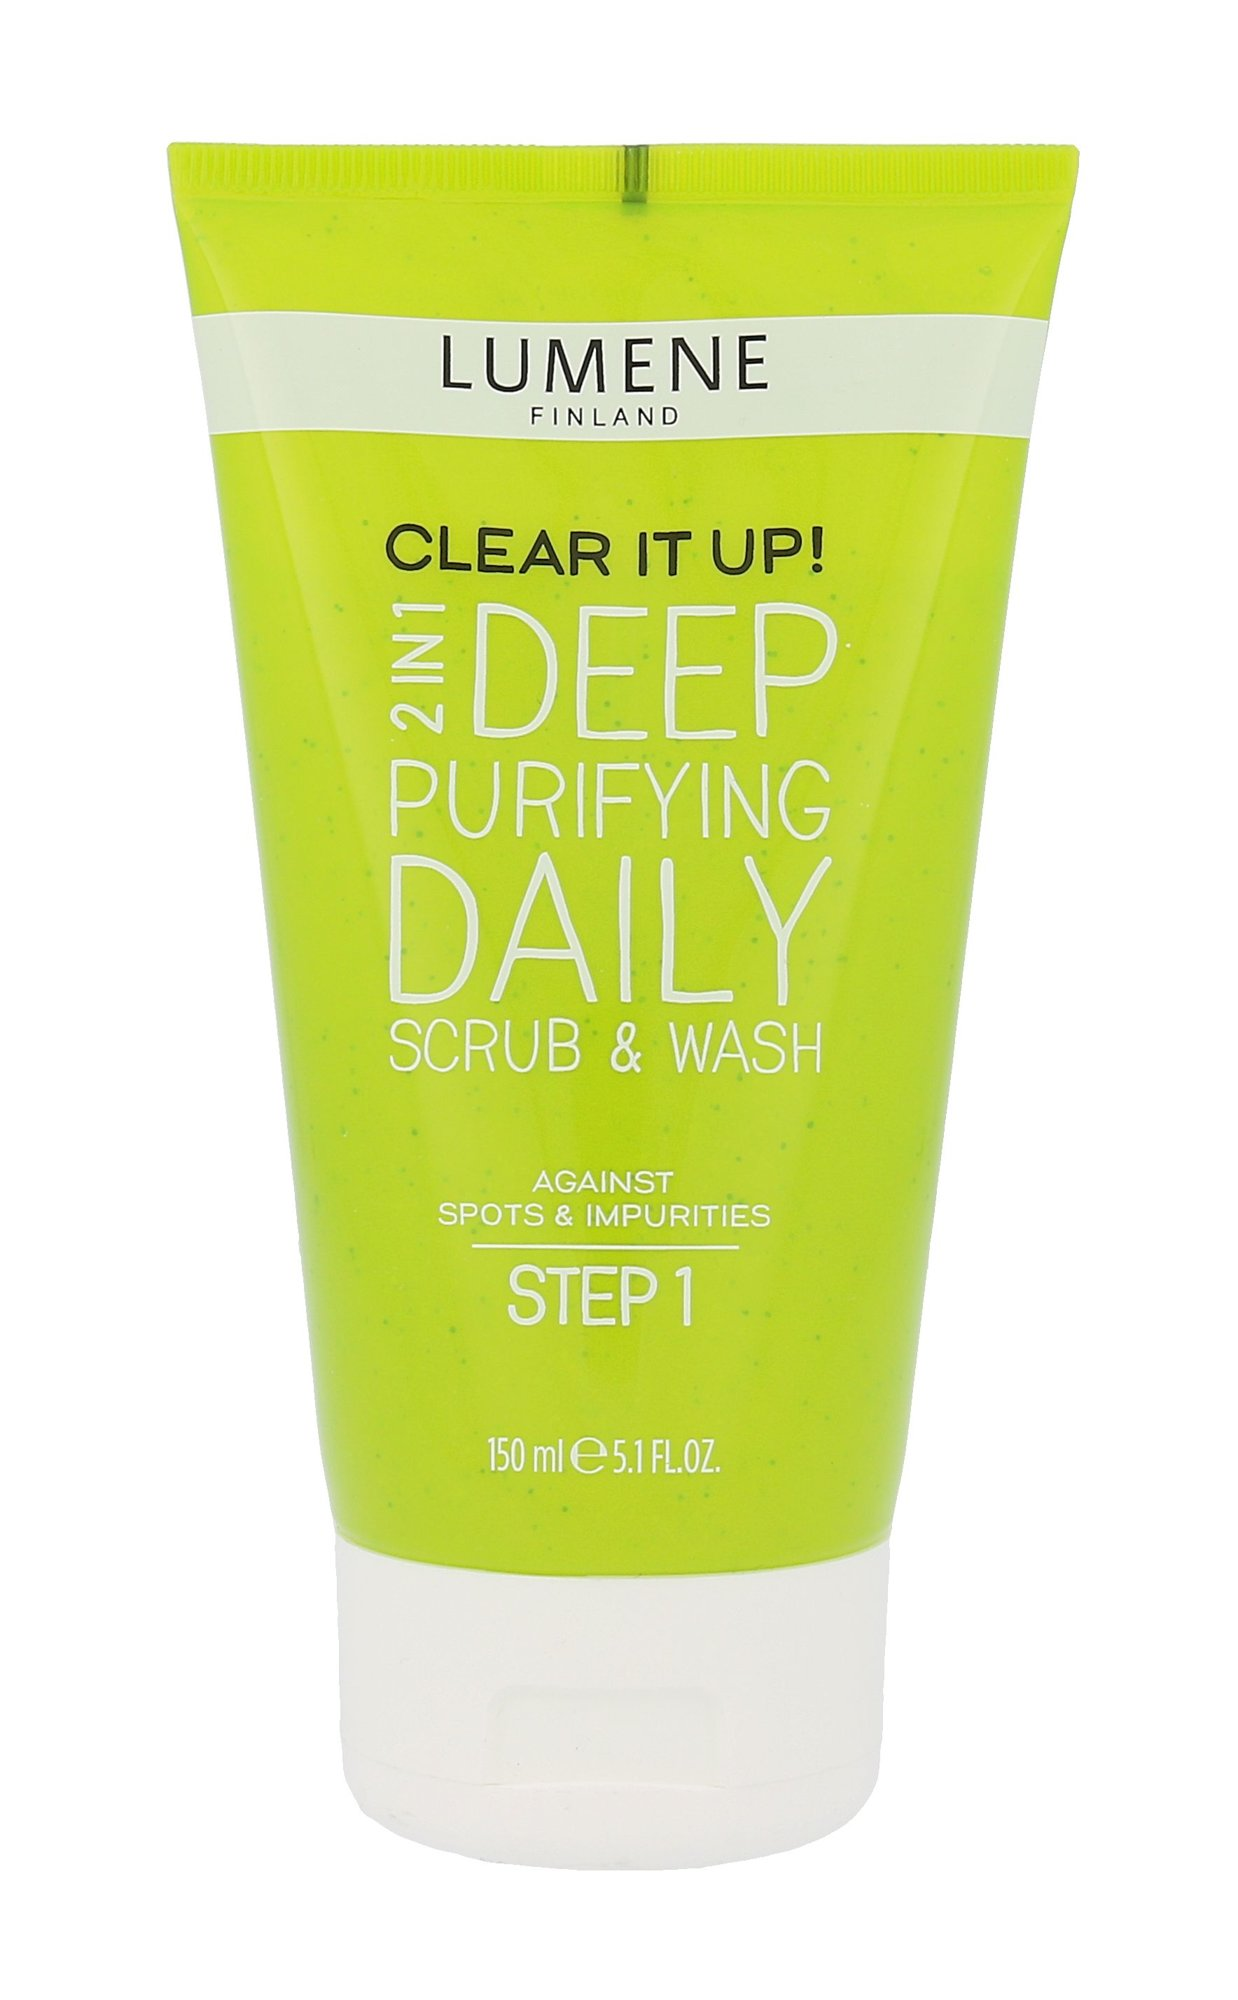 Lumene Clear It Up! Cosmetic 150ml  Deep Purifying Daily Scrub & Wash 2in1